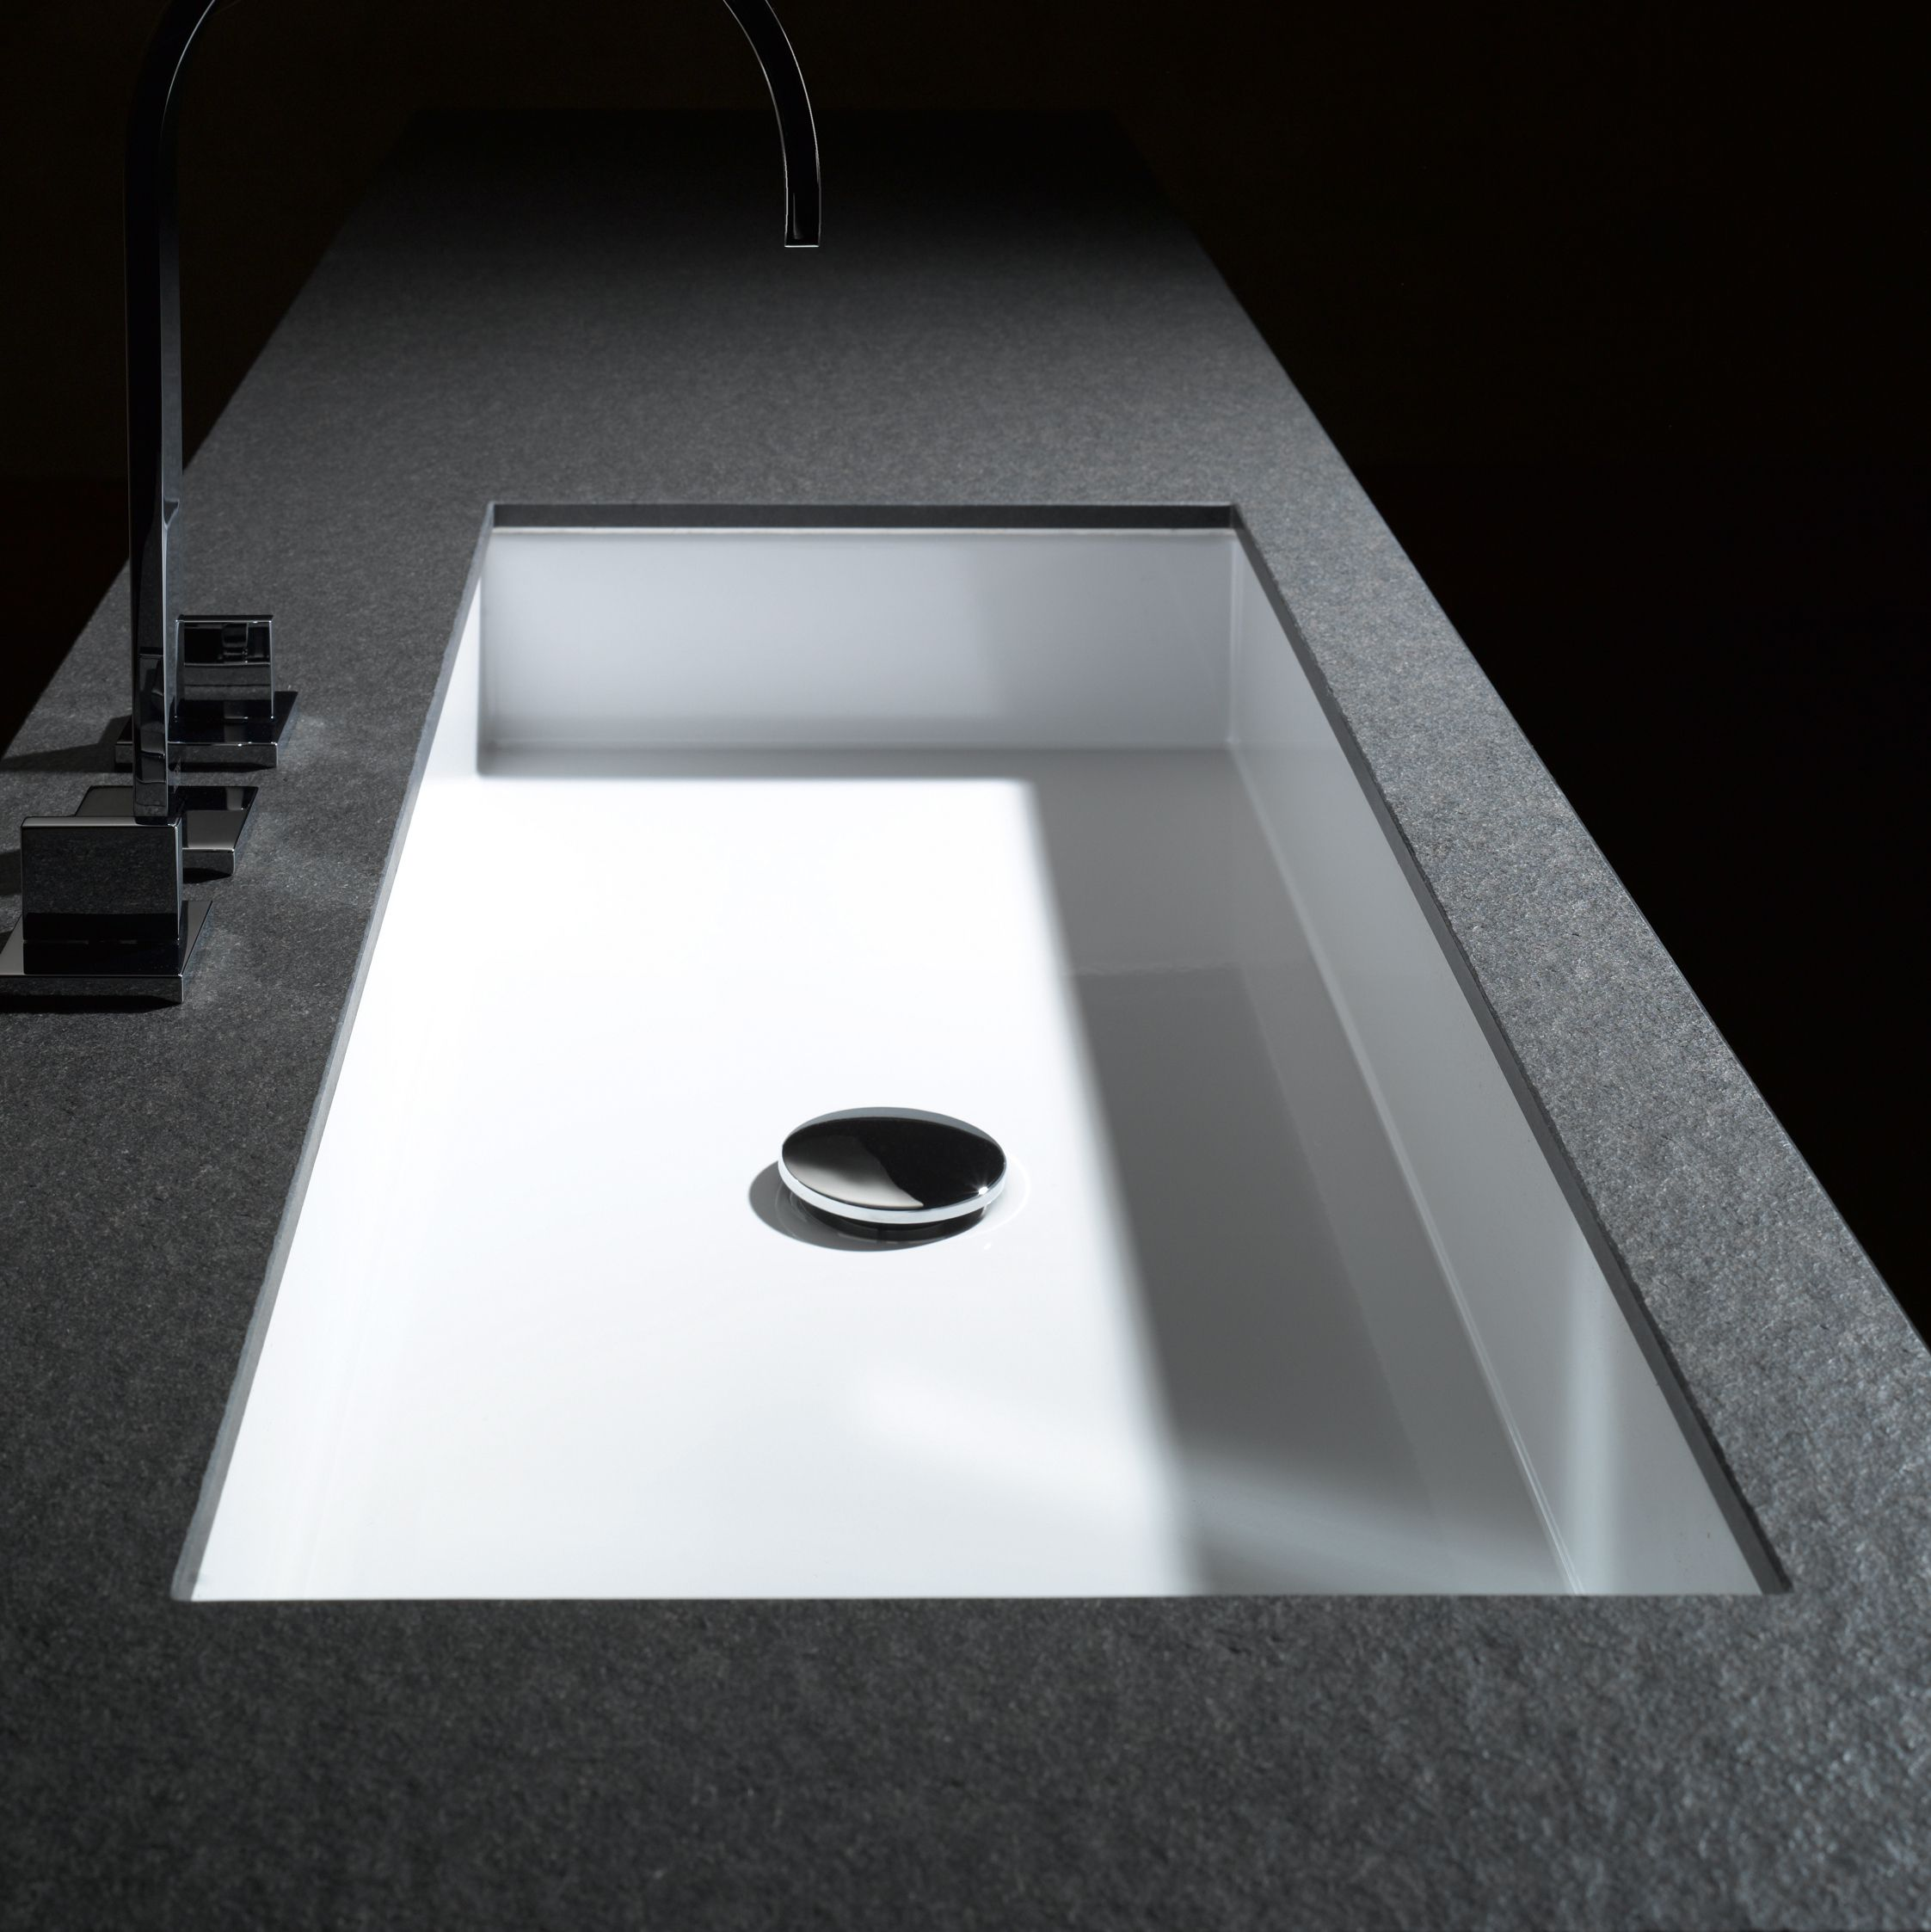 Lavabo VASQUE ENCASTRéE - ALAPE | bathroom | Sink, Bathroom ...